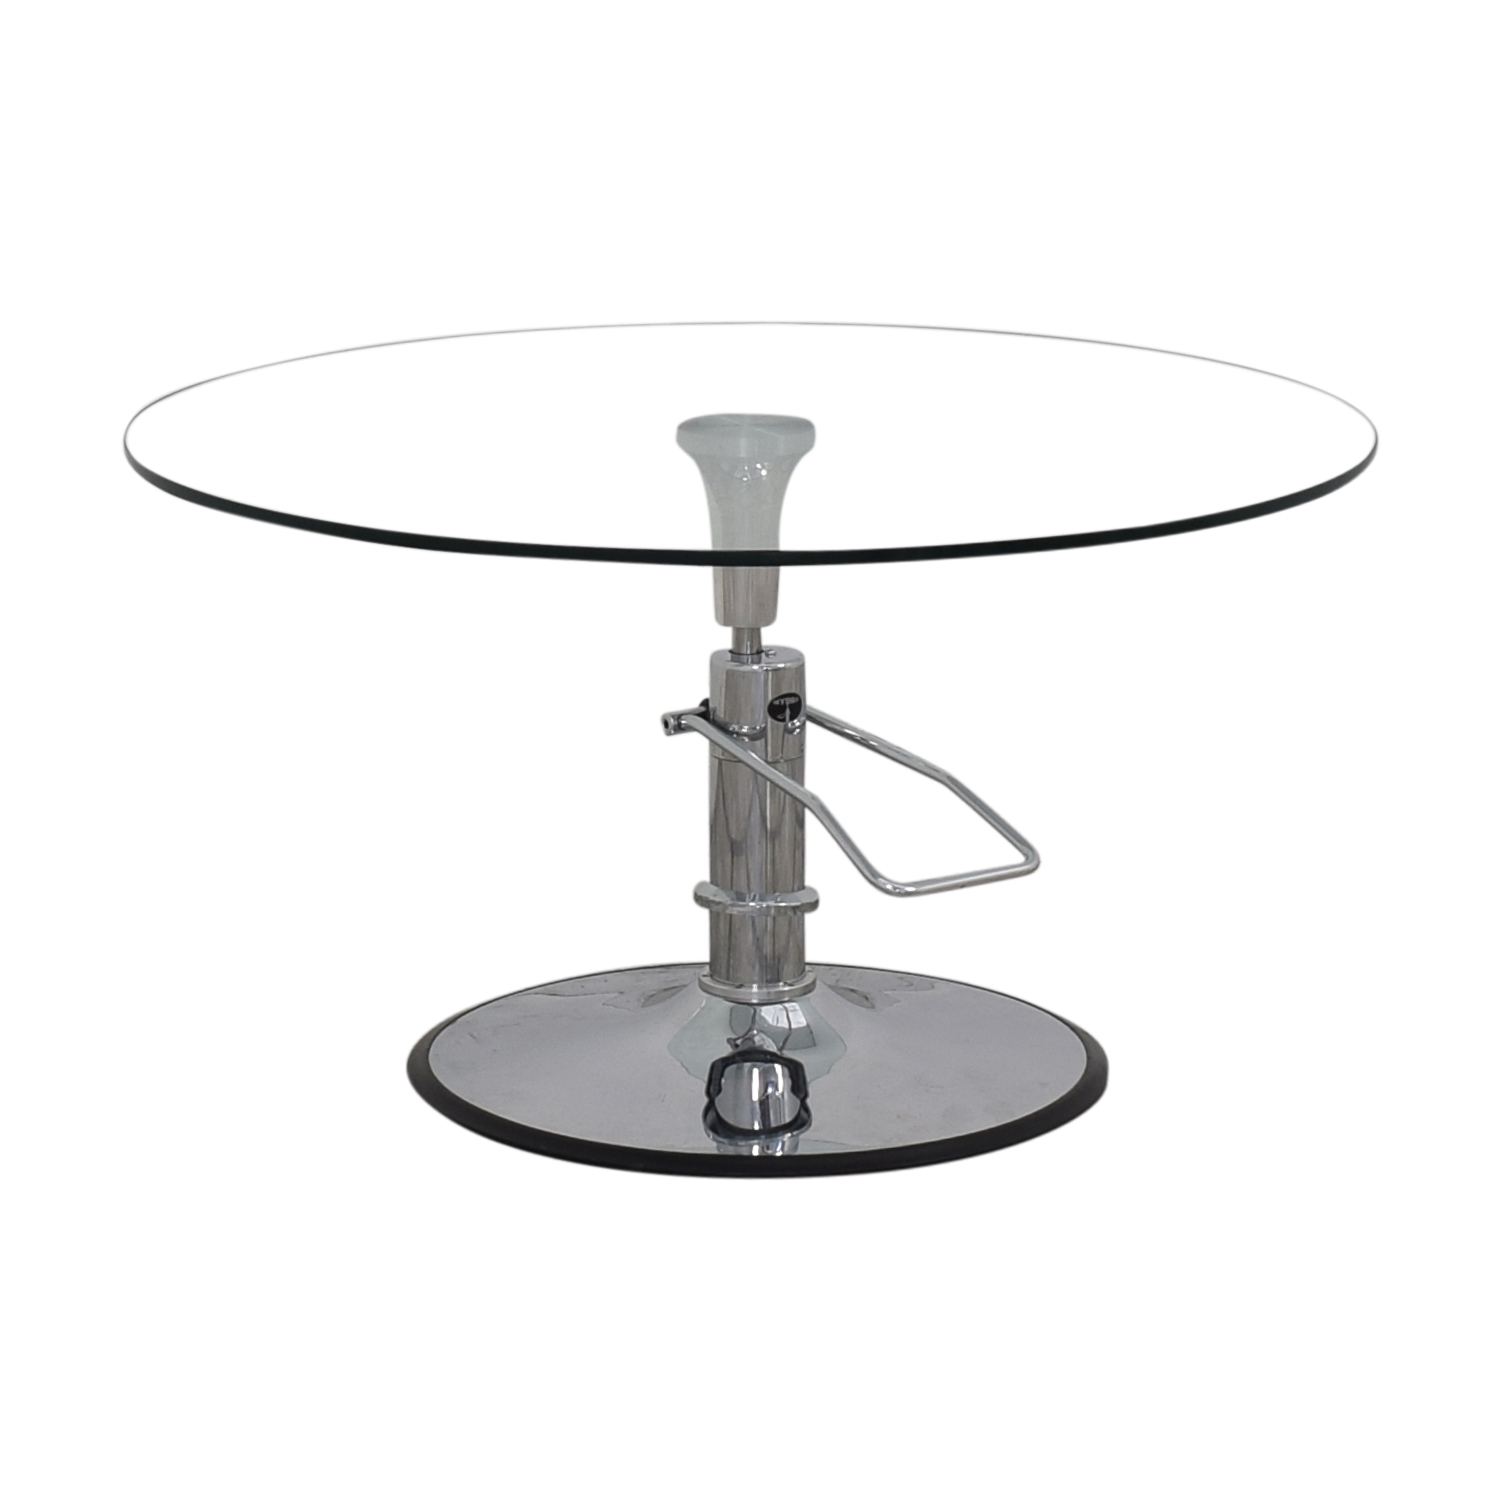 Hydra Designs Hydra Adjustable Glass Table discount